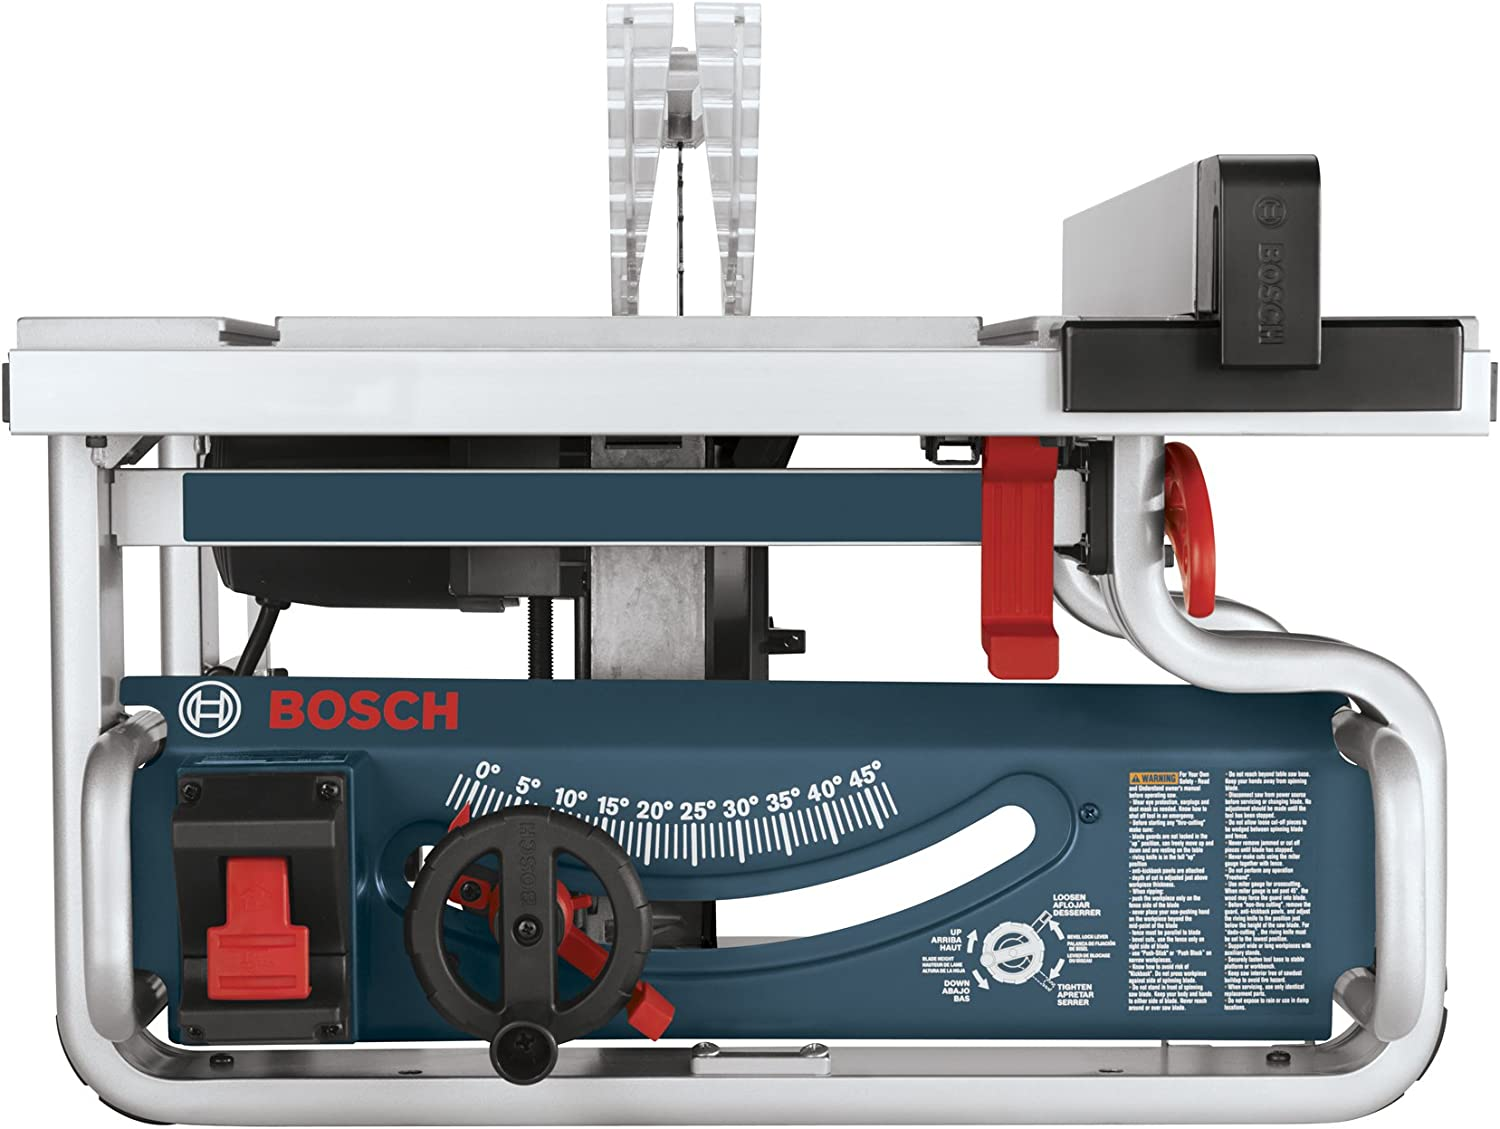 Bosch GTS1031 Table Saws product image 2